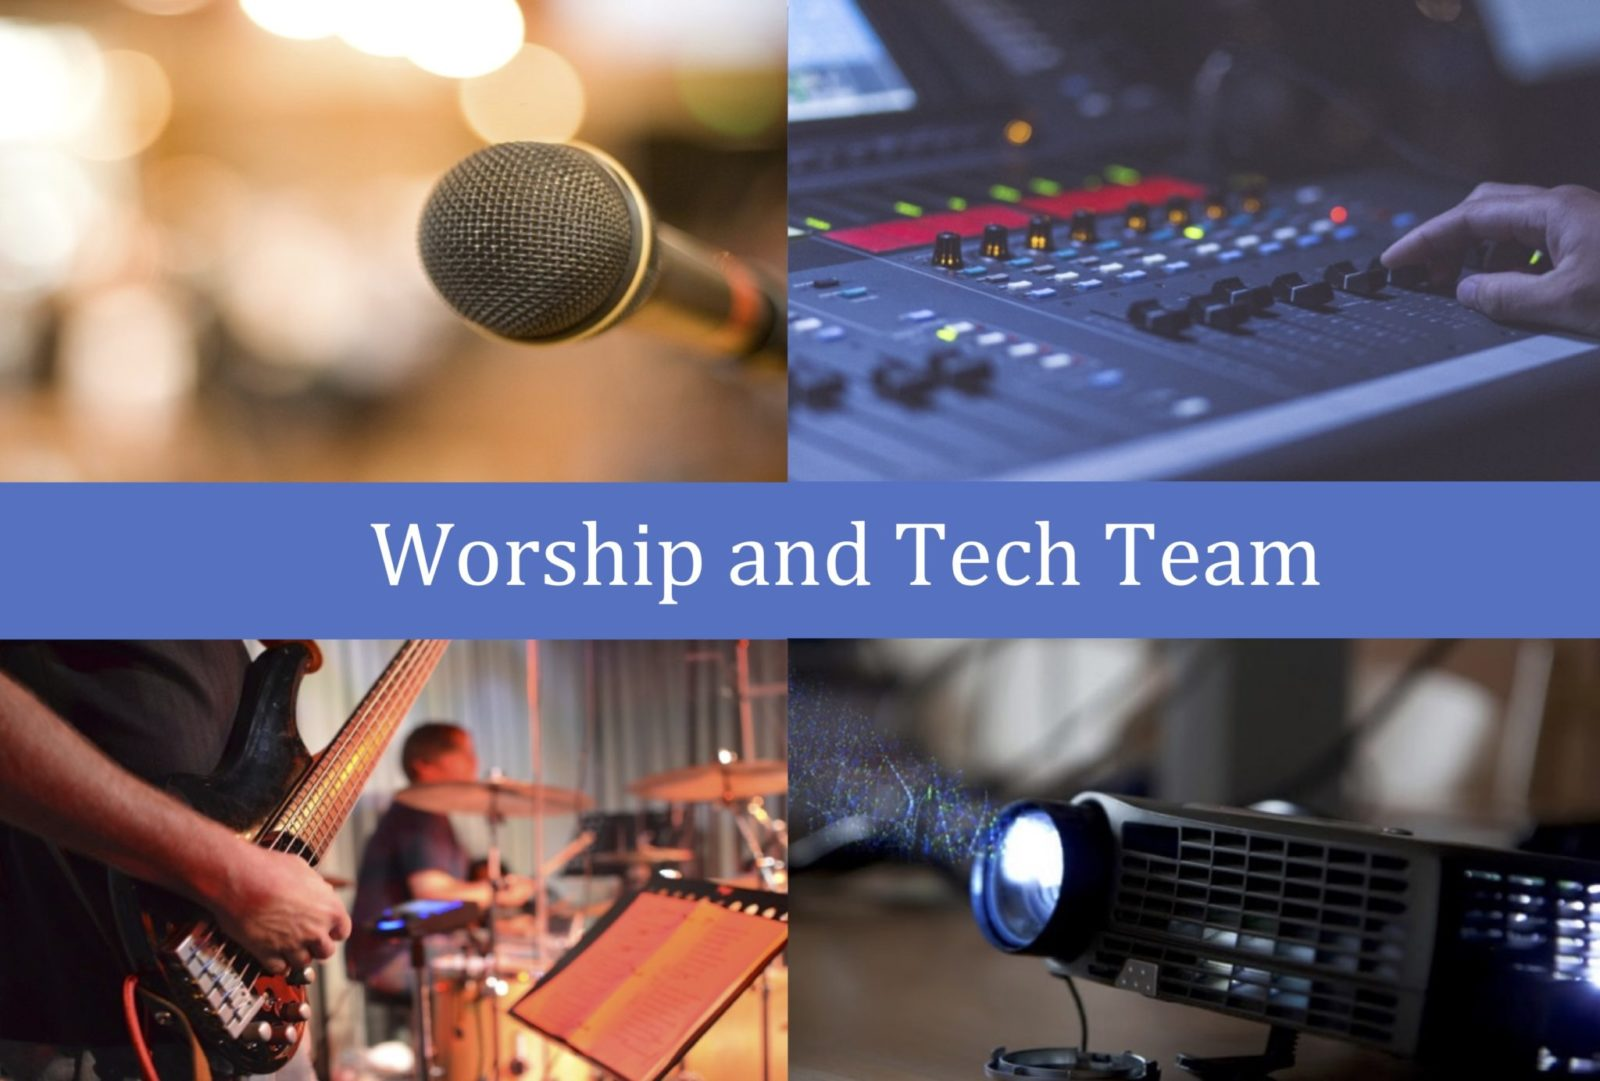 WORSHIP and TECH